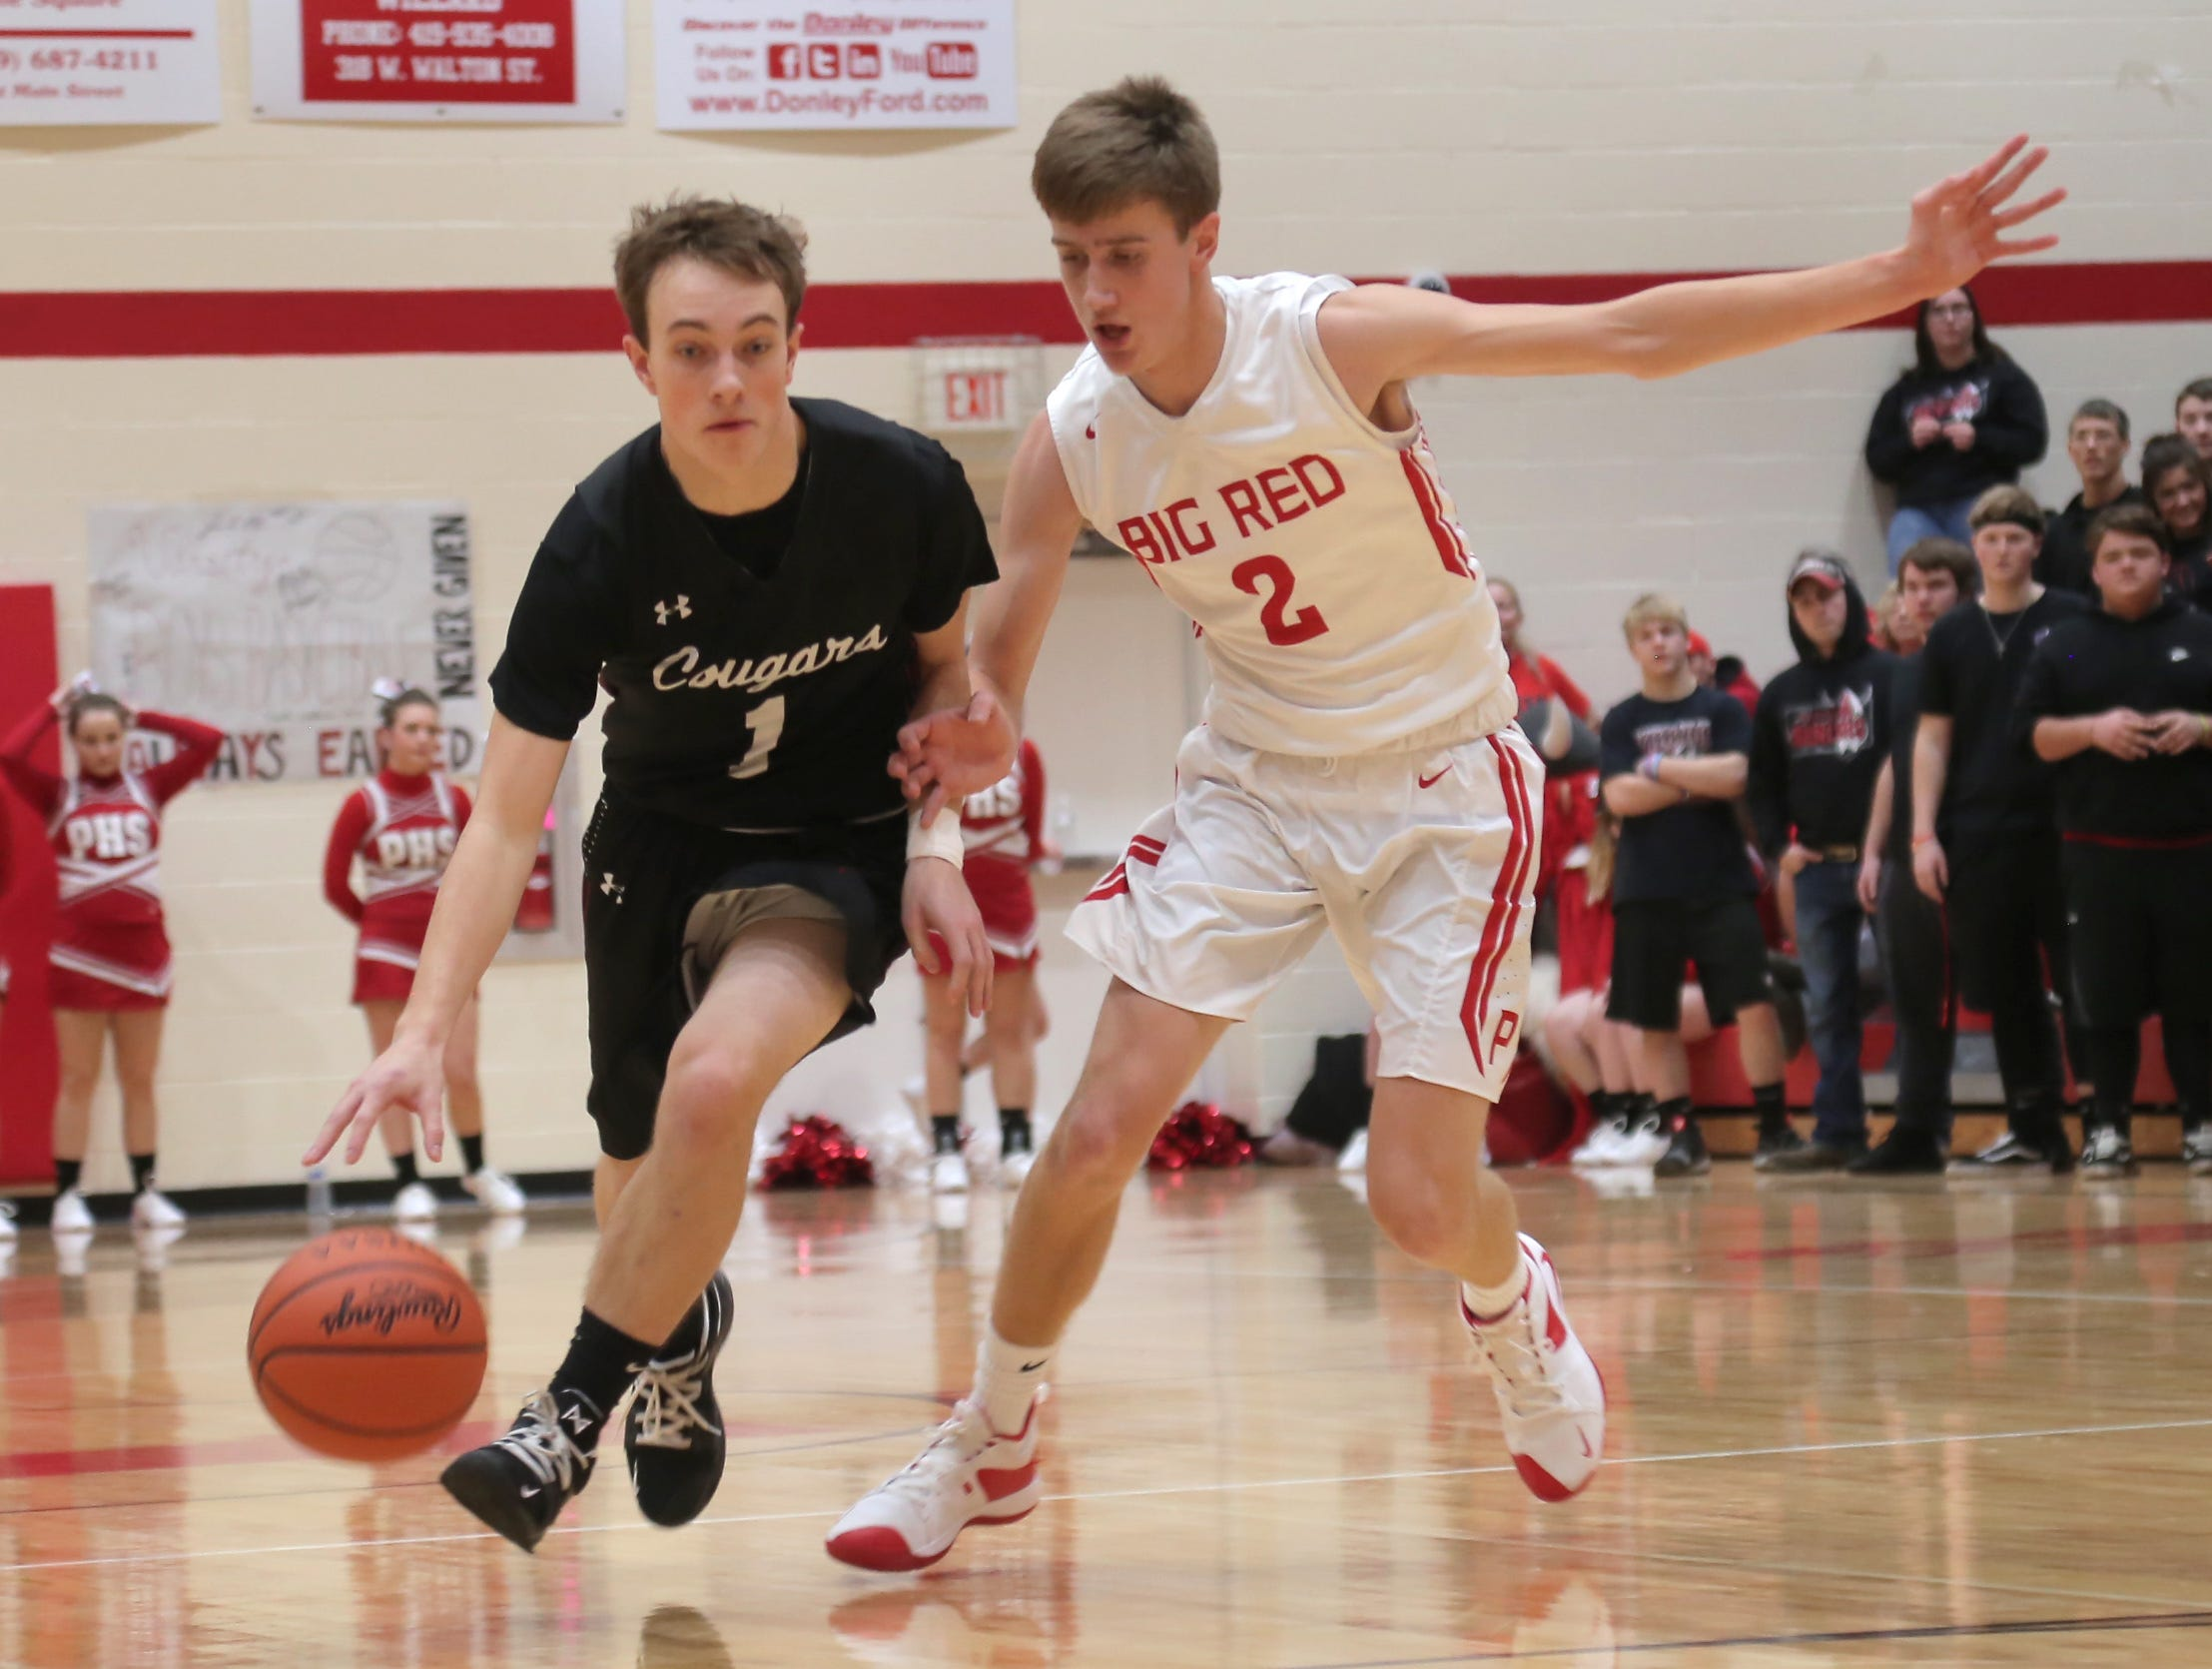 Crestview's Jacob Greer dribbles against Plymouth's Jacob Adams on Friday.